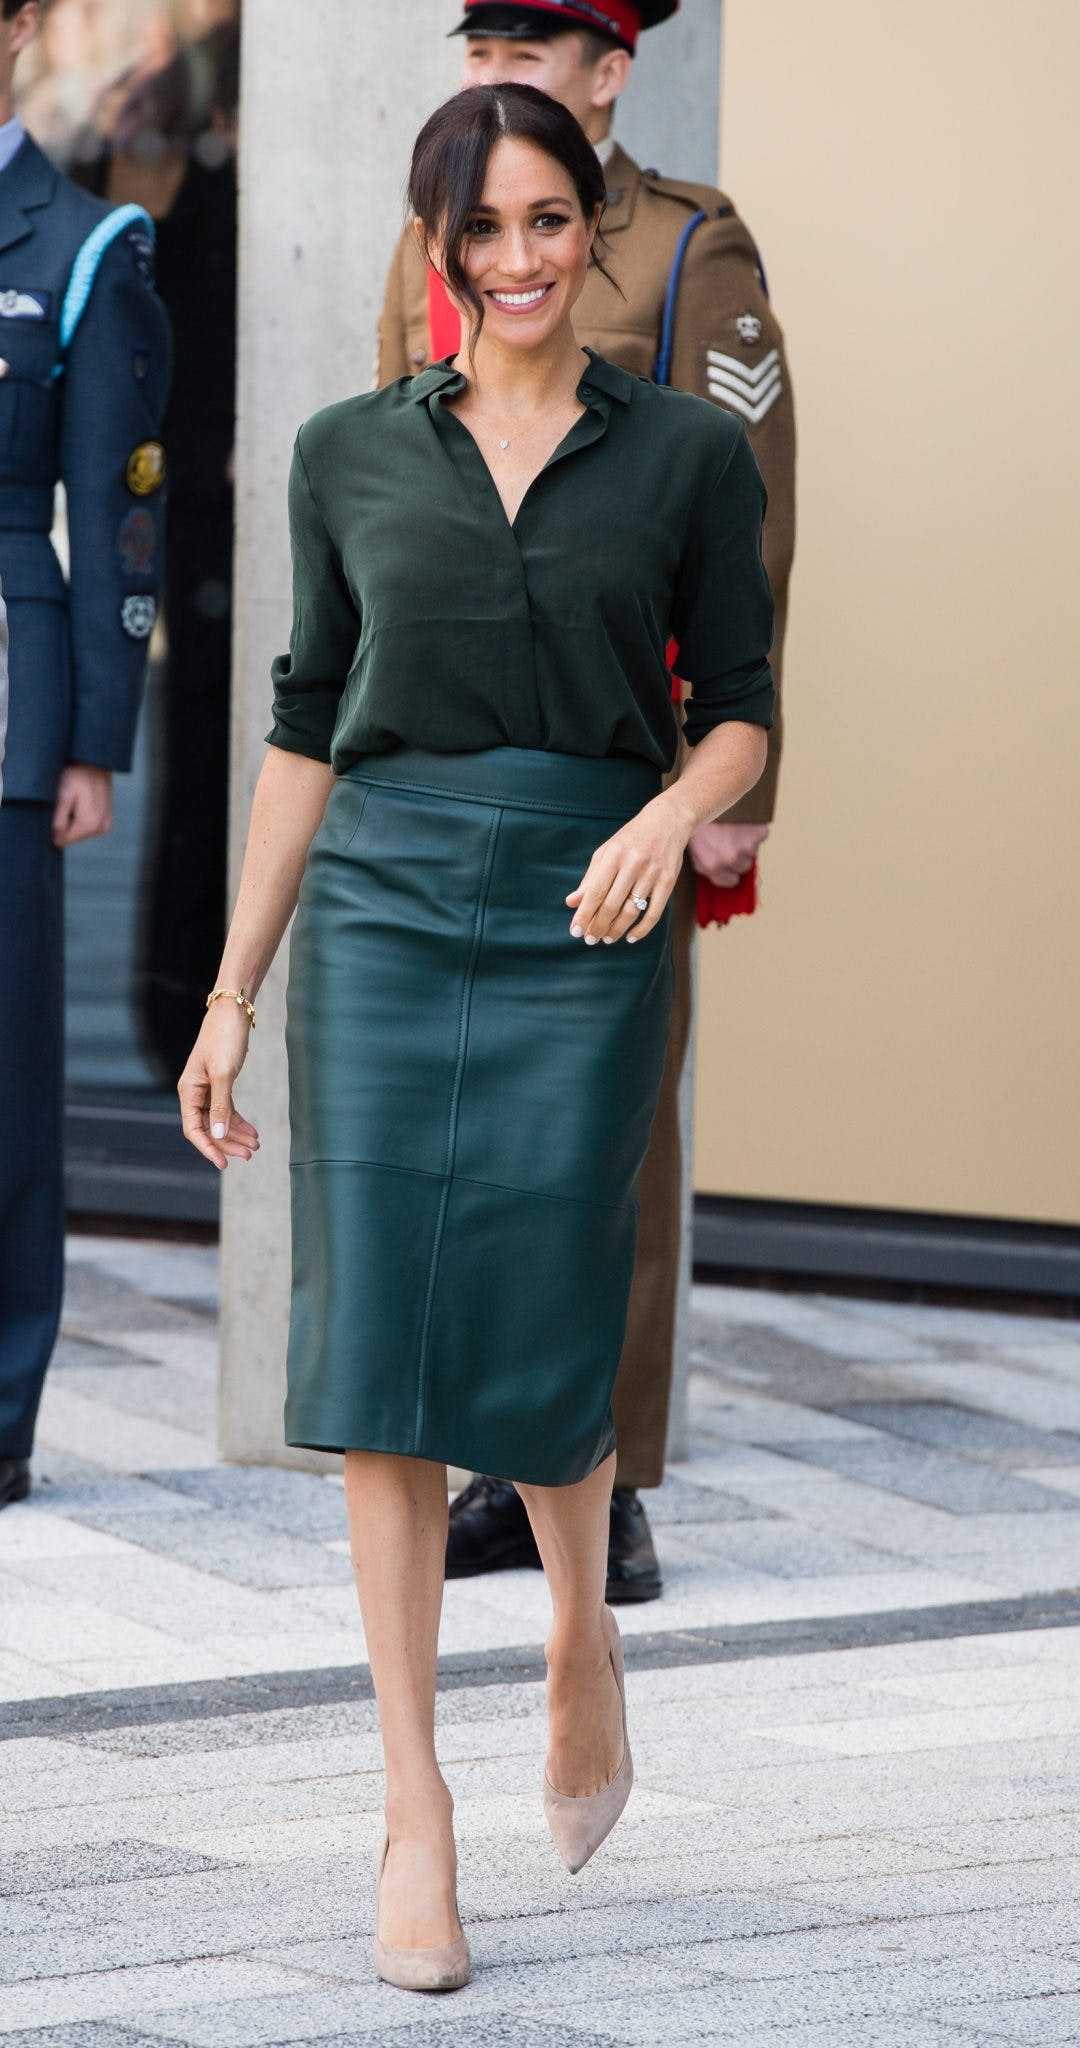 134e91d3774e Get daily outfit inspiration with our round-up of the best A-list ...